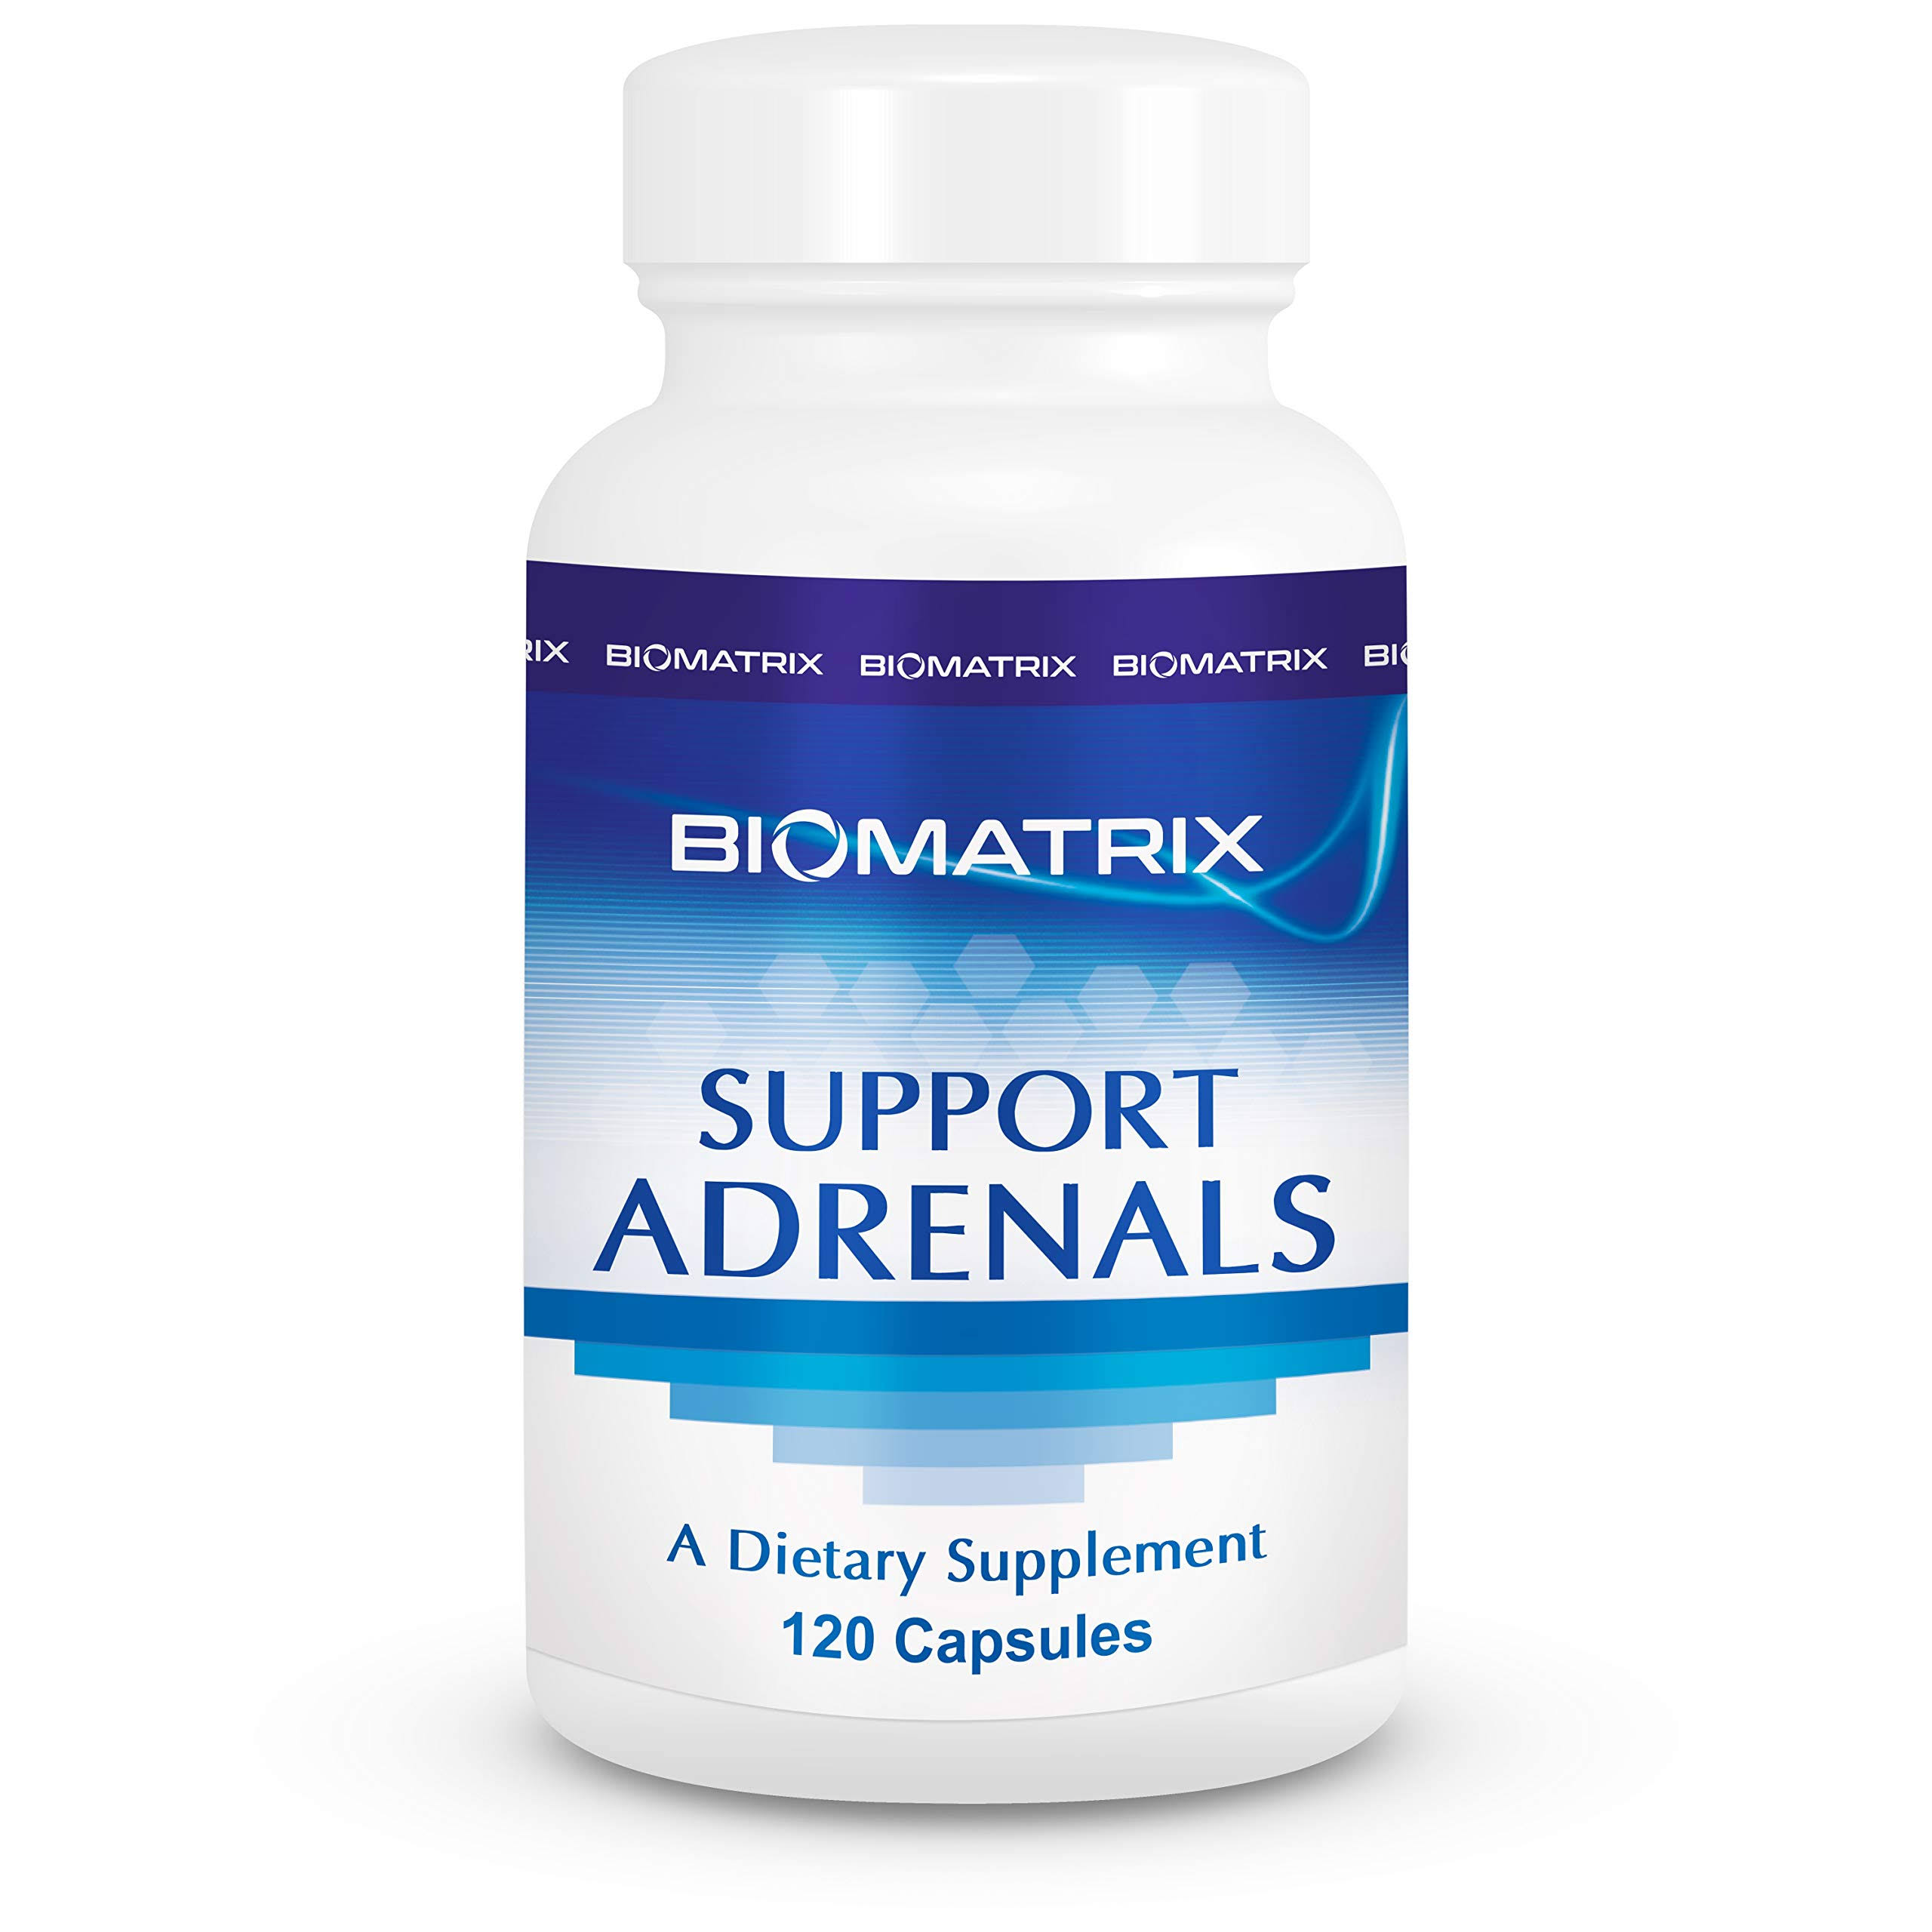 BioMatrix Support Adrenals Dietary Supplement Capsules - 120ct